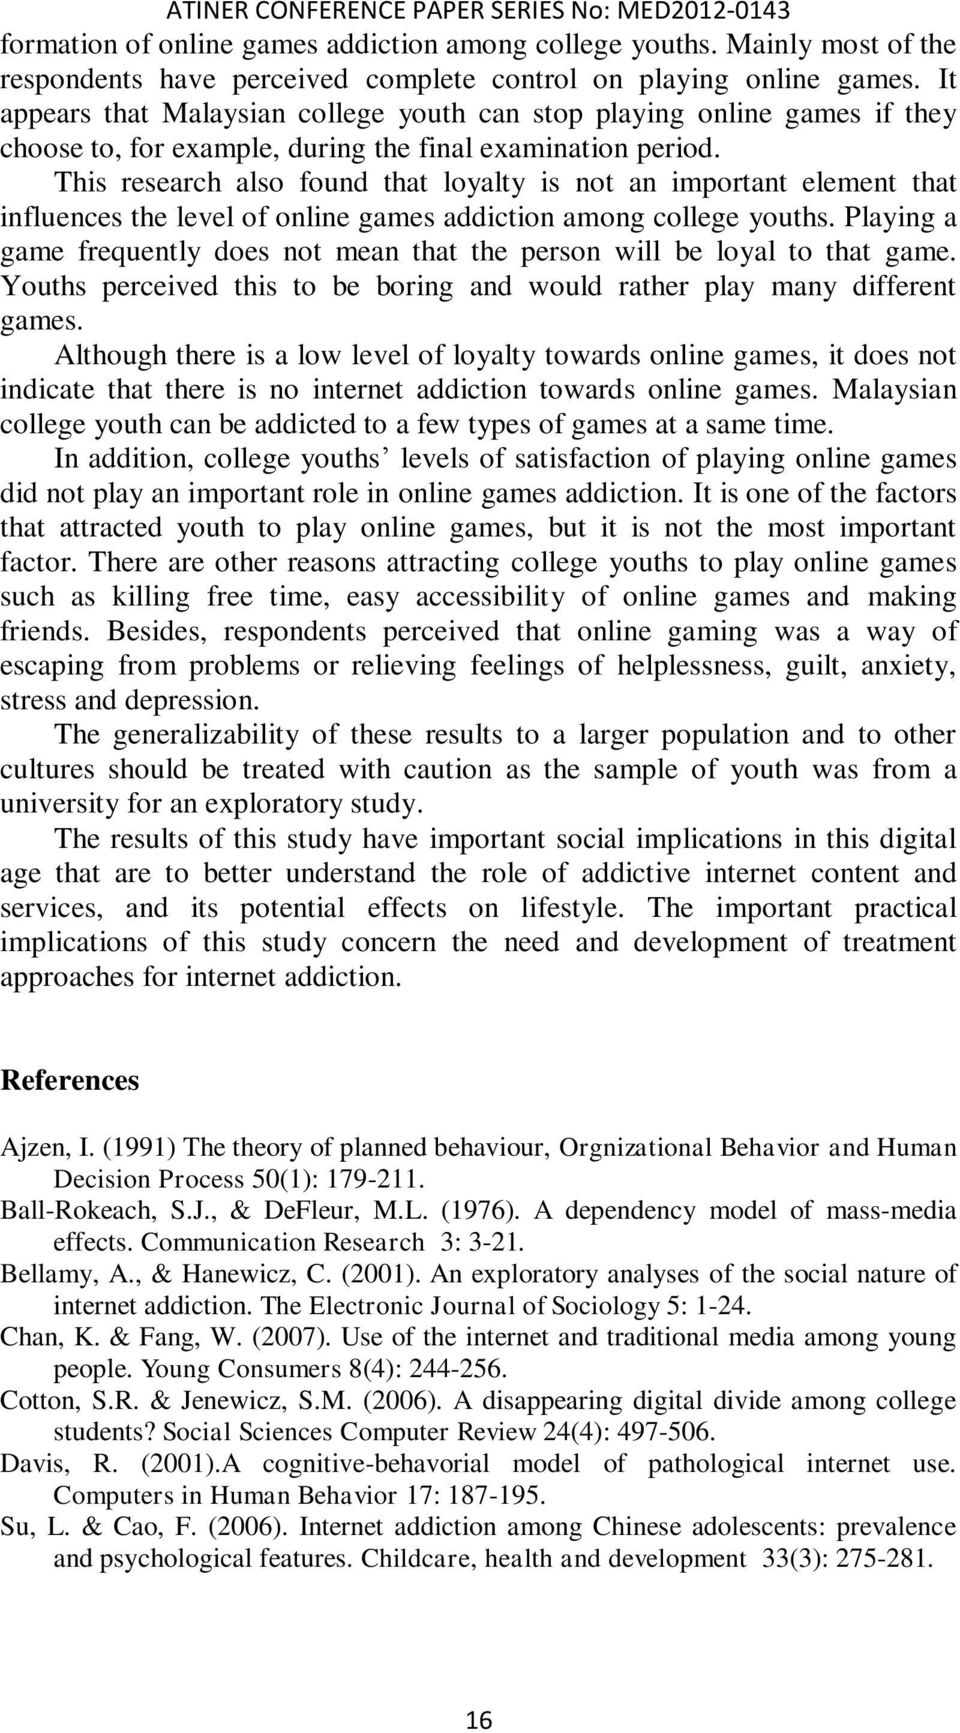 This research also found that loyalty is not an important element that influences the level of online games addiction among college youths.